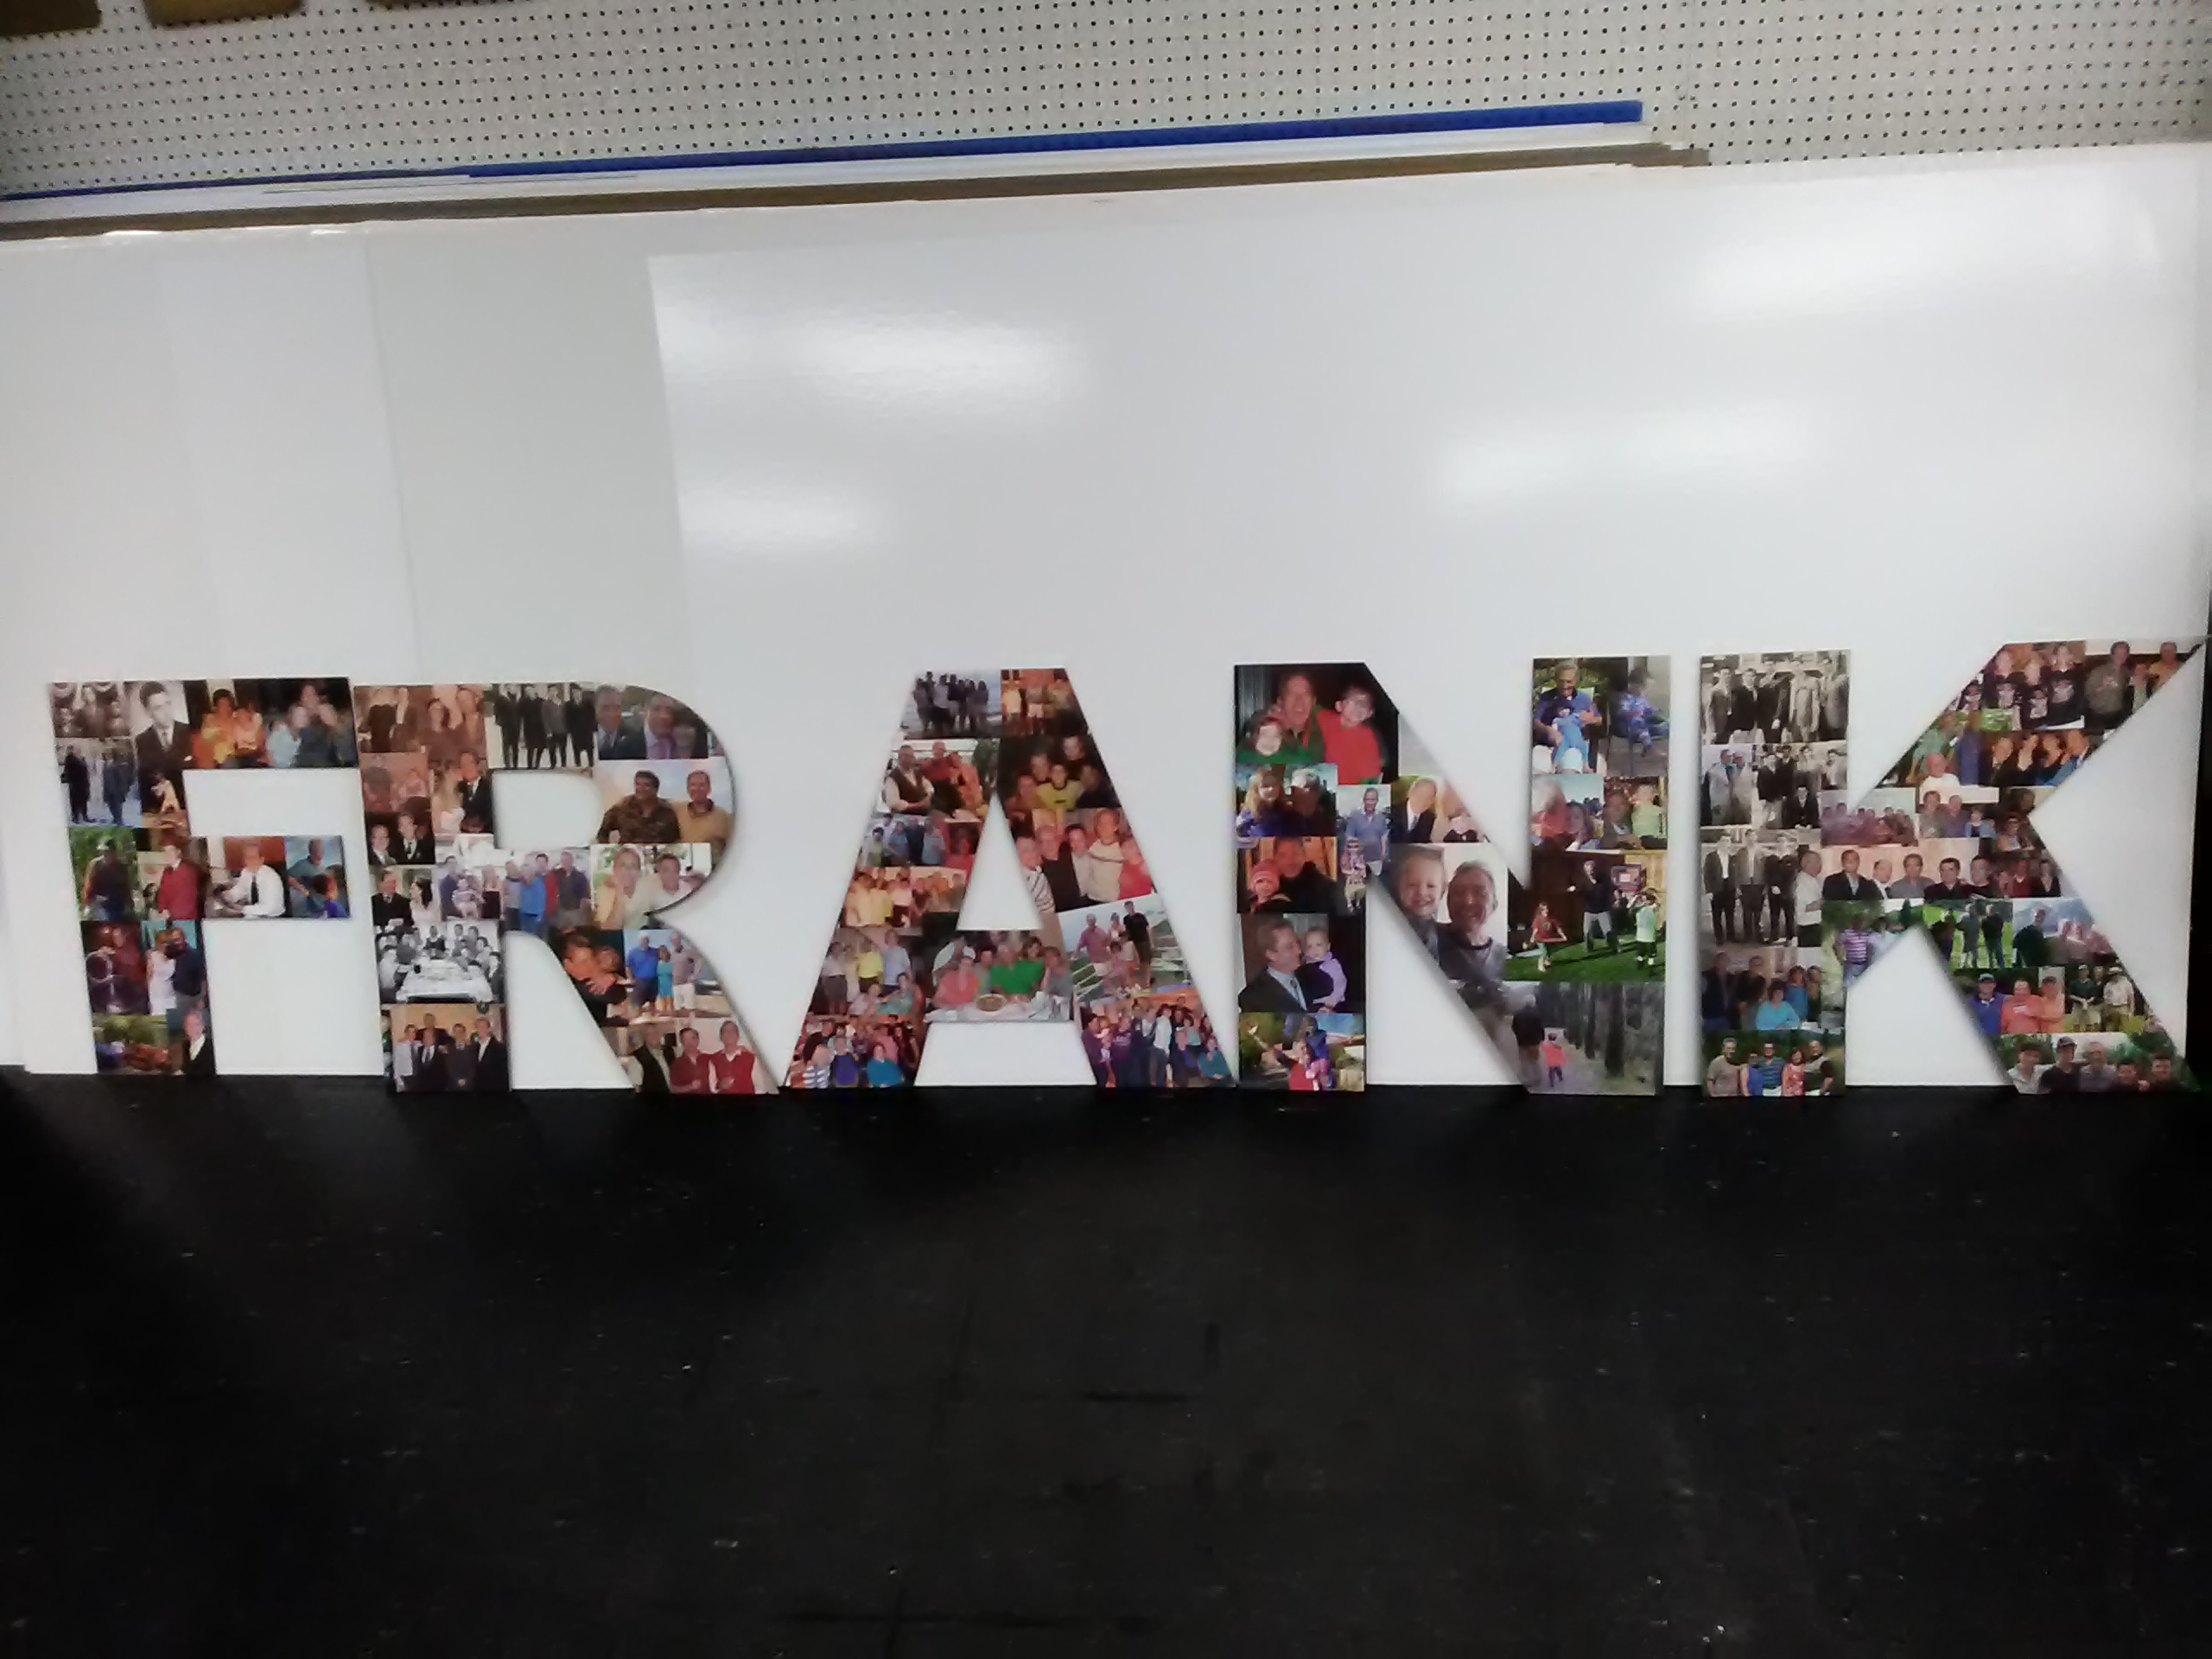 Custom Cardboard Cutout Standup Letters and Numbers Collage for Party and Events